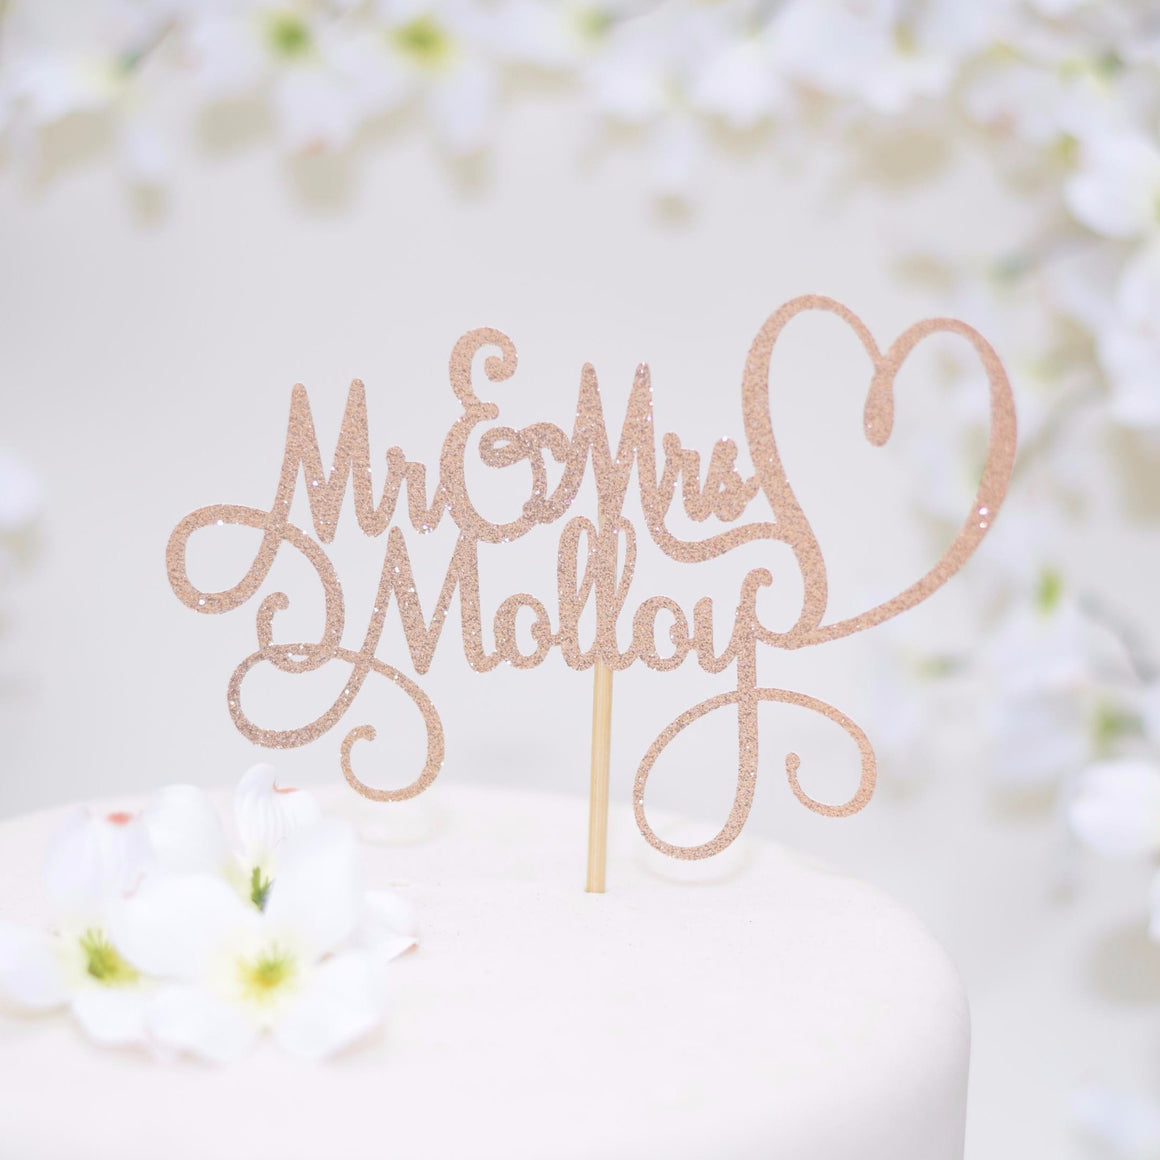 Mr and Mrs Malloy heart wedding cake topper with gold sparkle details